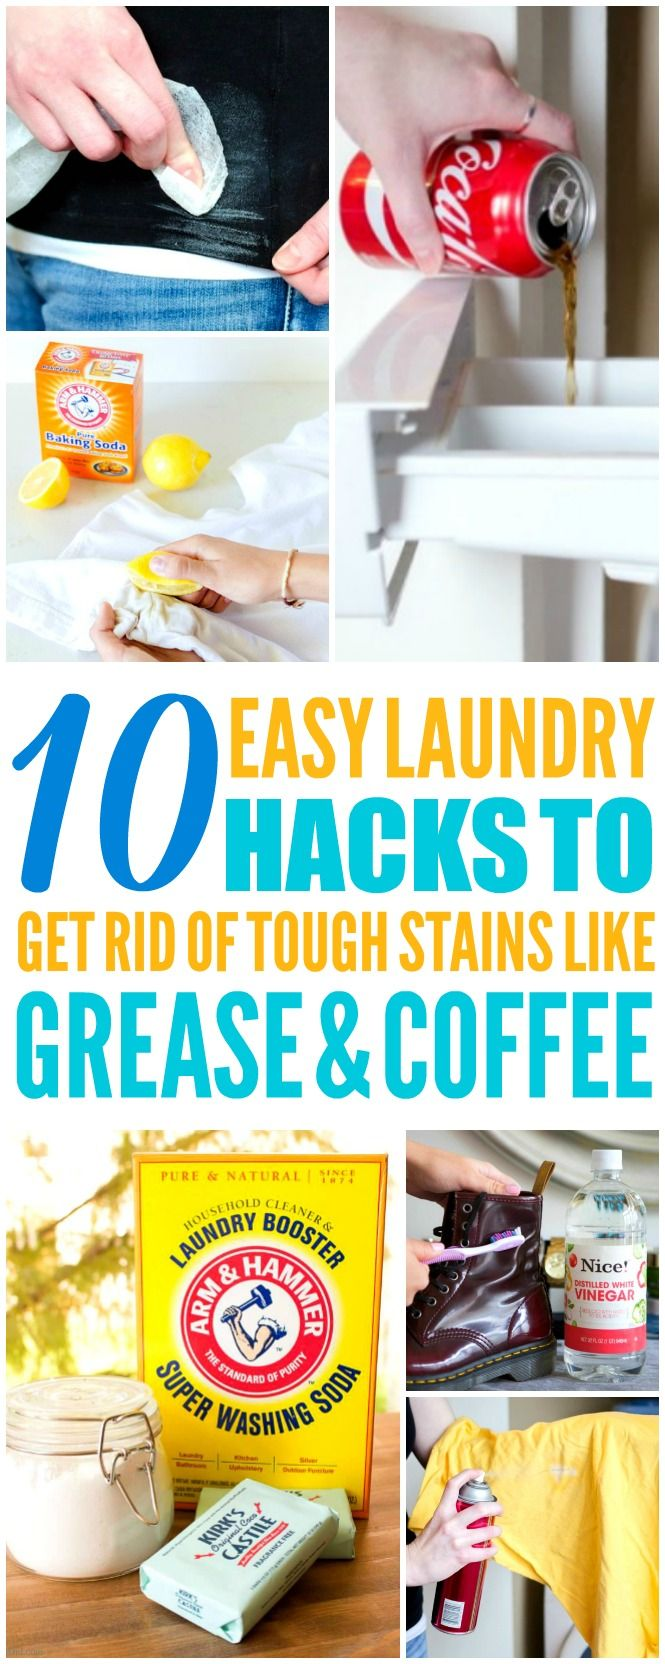 These 10 easy laundry hacks are THE BEST! I'm so happy I found these AMAZING tips! Now I have some great ways to get rid of stains! Definitely pinning!